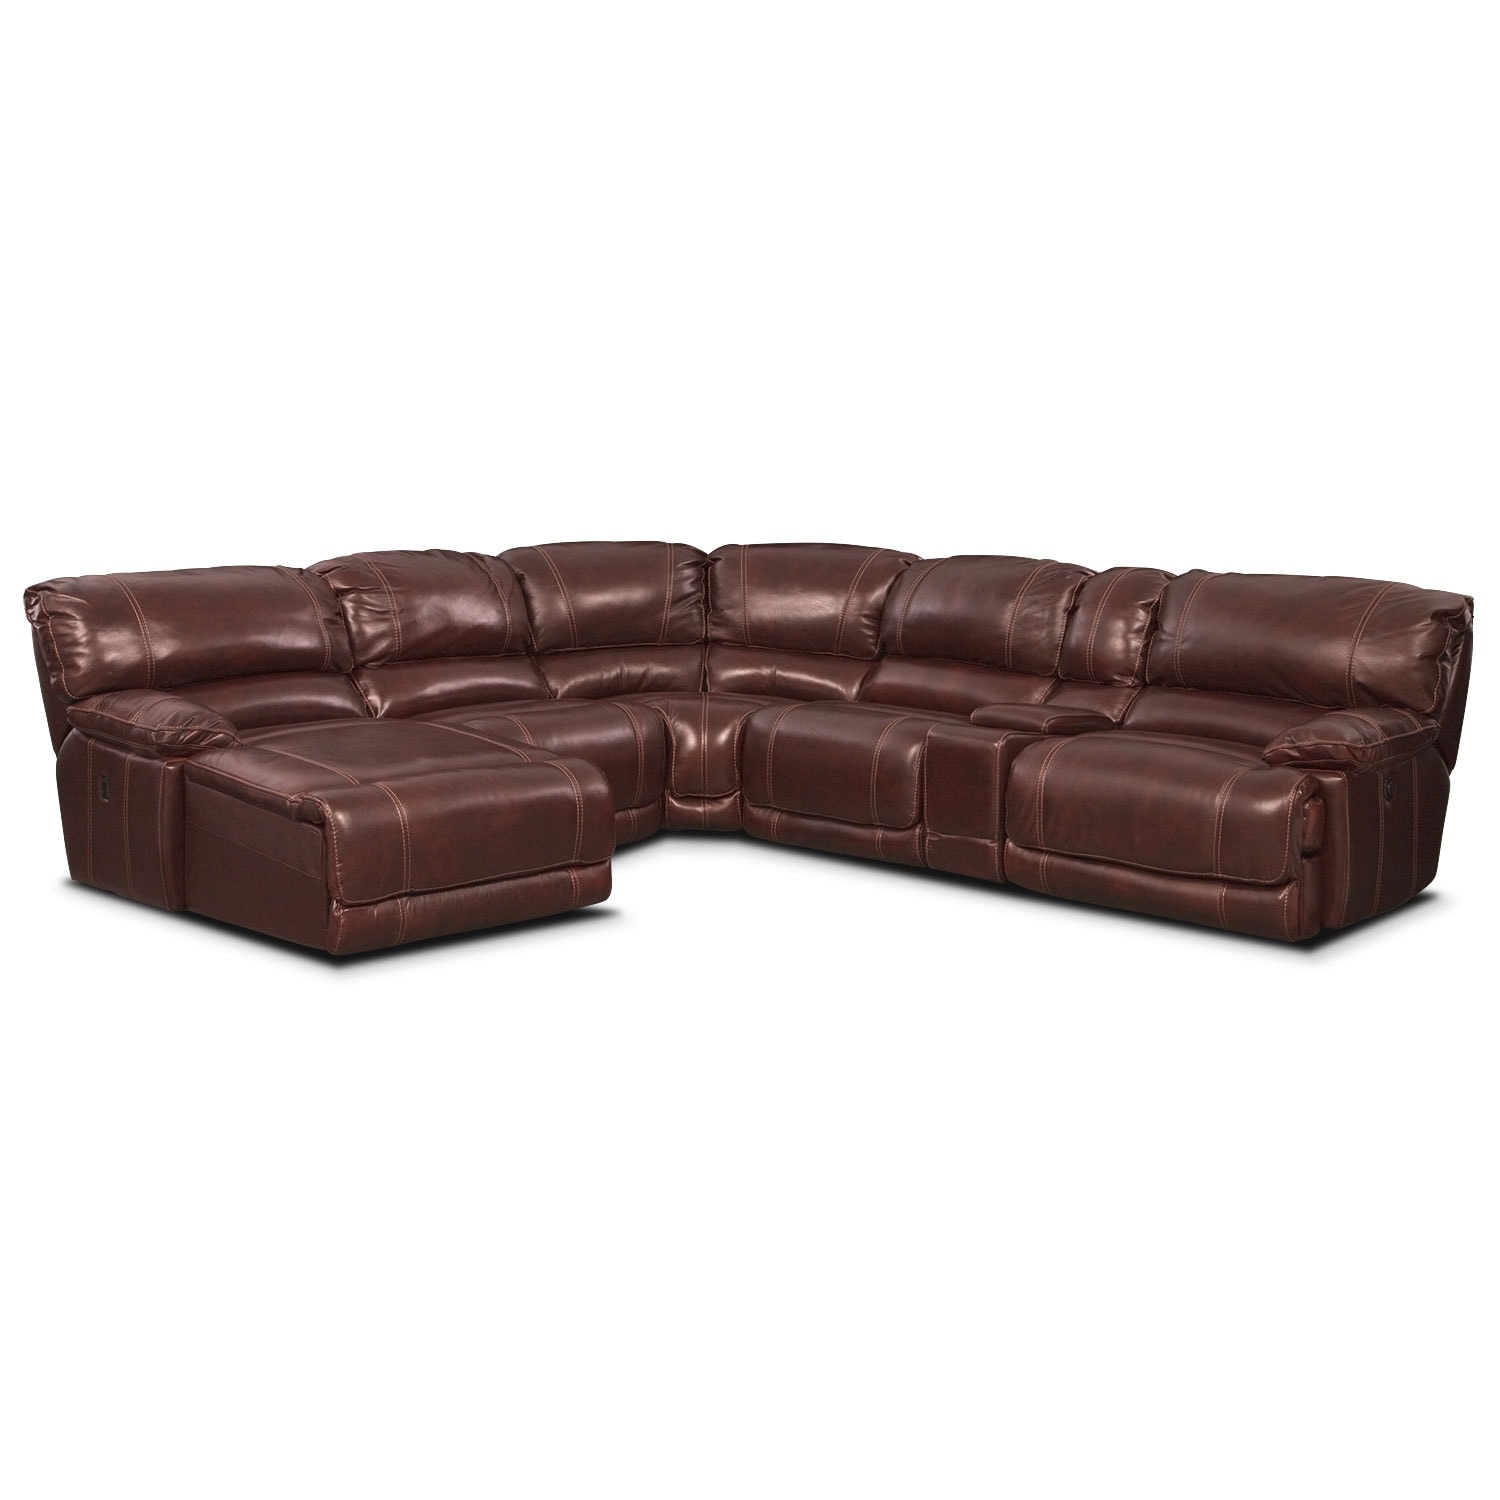 Living Room Furniture - Clinton Burgundy 6 Pc. Power Reclining Sectional (Reverse)